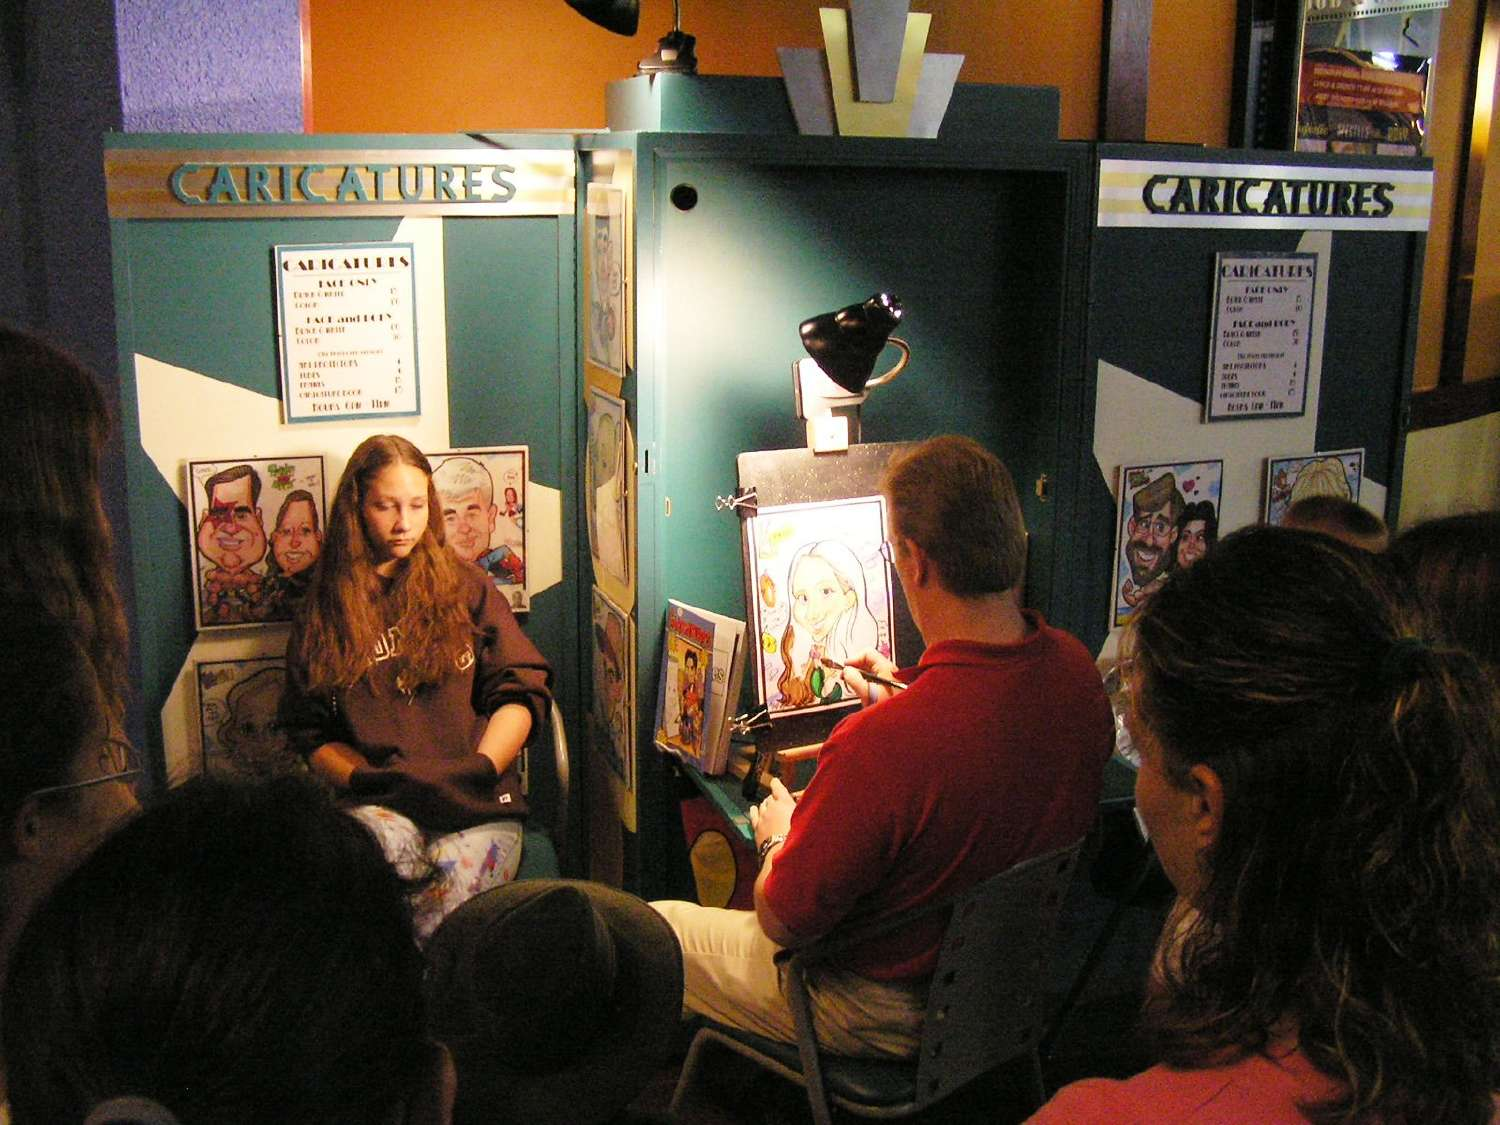 Caricature artist at Disney's All-Star Movies Resort